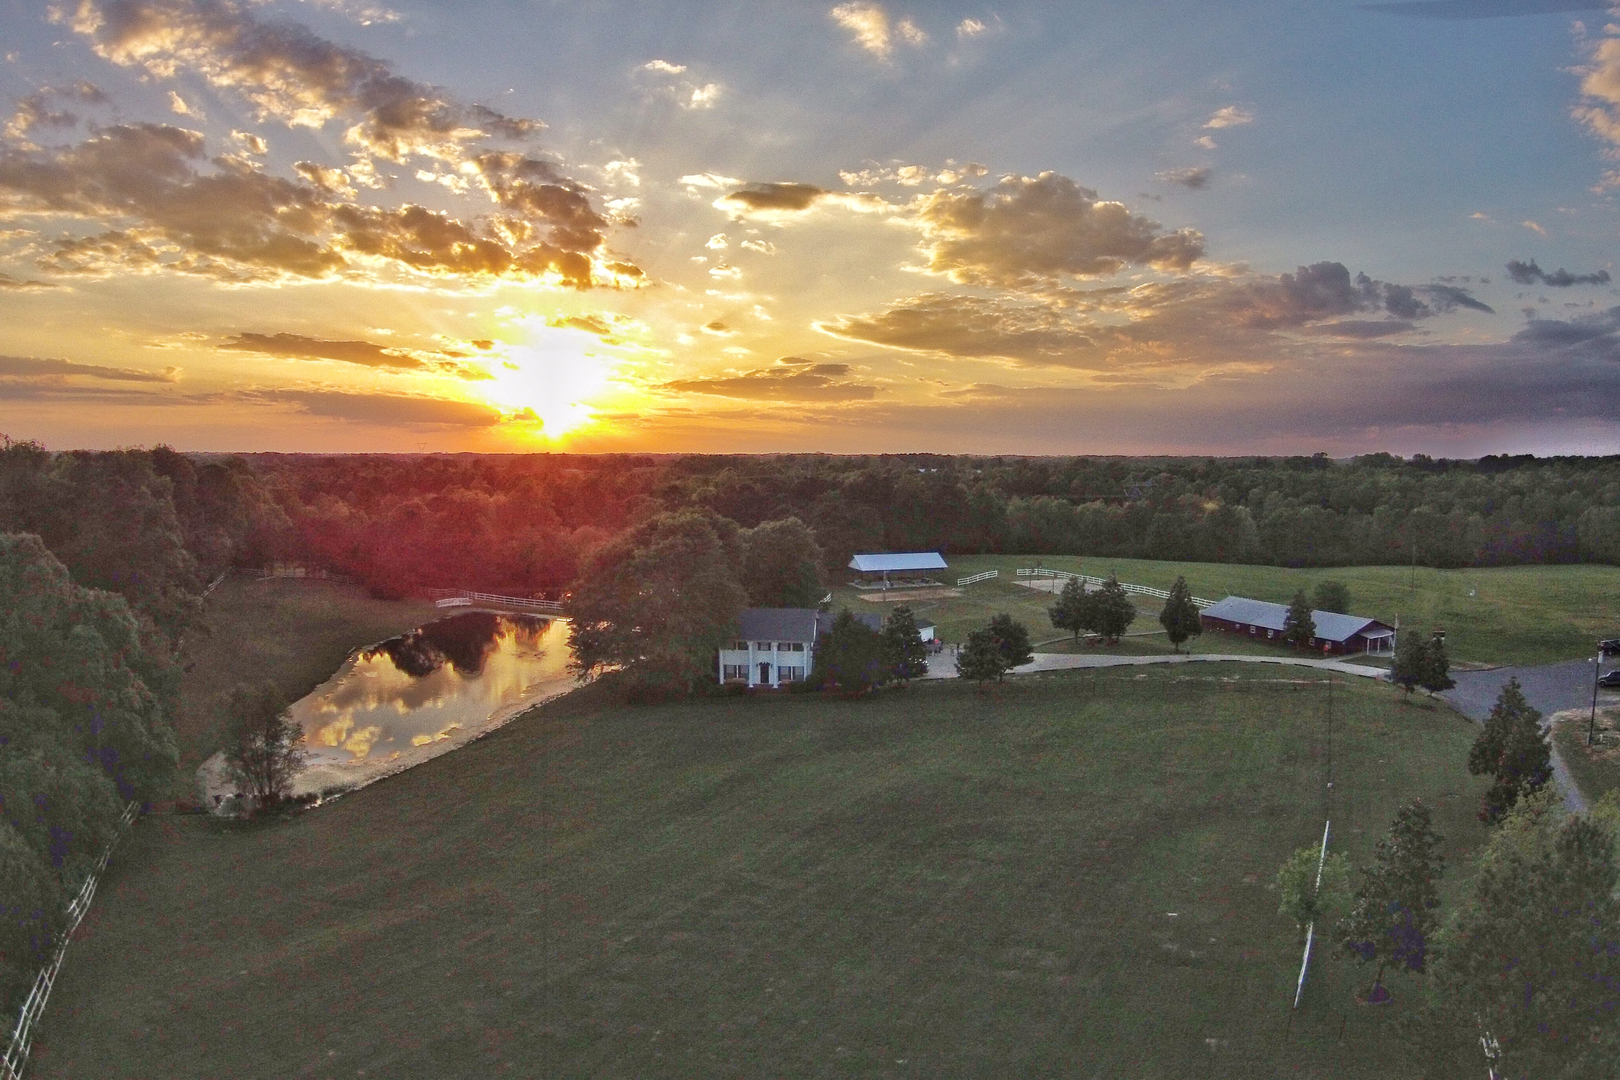 Sunset at The Foundry Farm